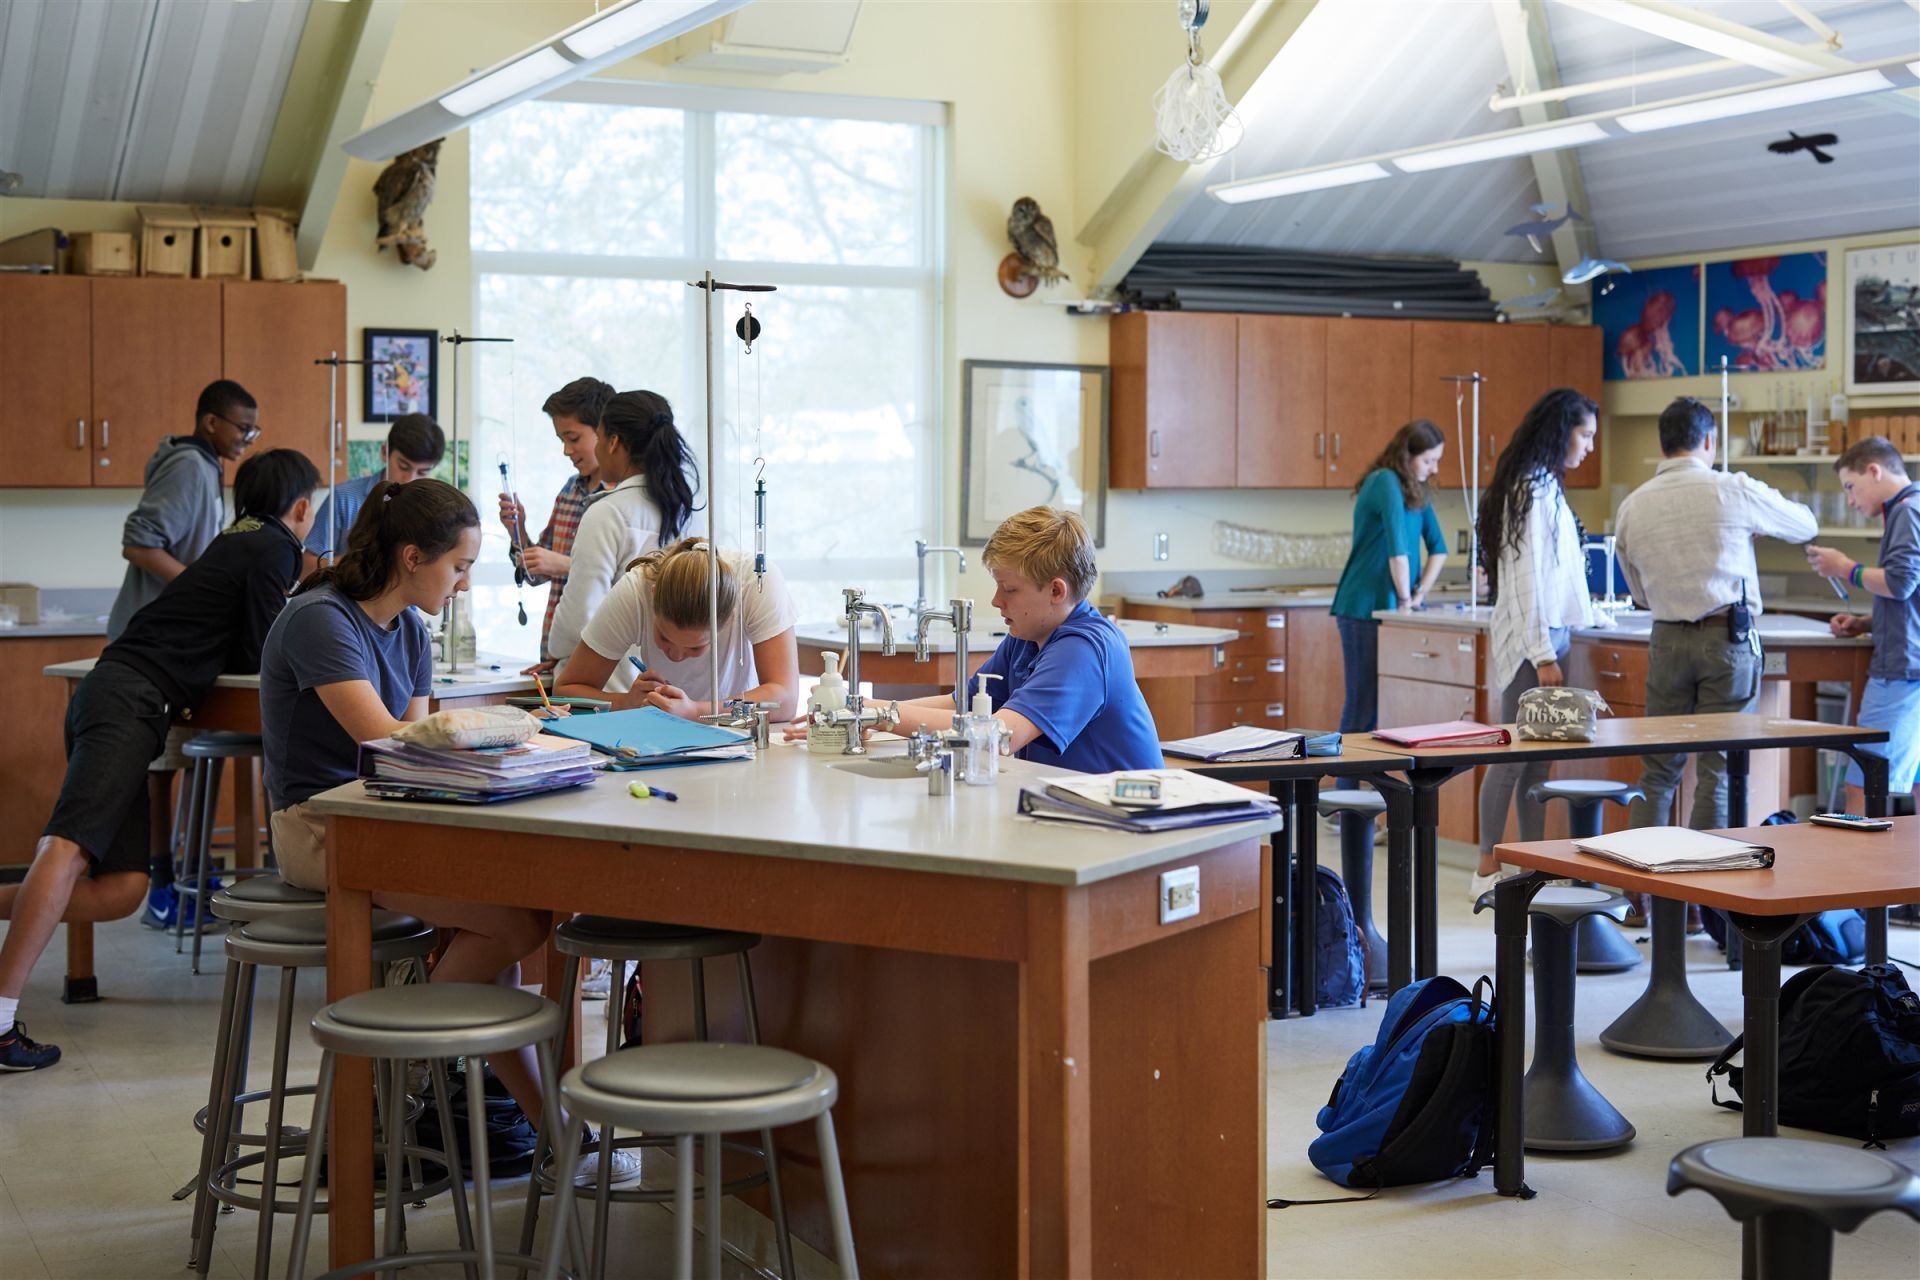 George E. Stevens building: This 41,000 square-foot facility features Upper School science classrooms with state-of-the-art equipment.  Classroom and lab work is complemented by field studies, both on campus and at regional sites.